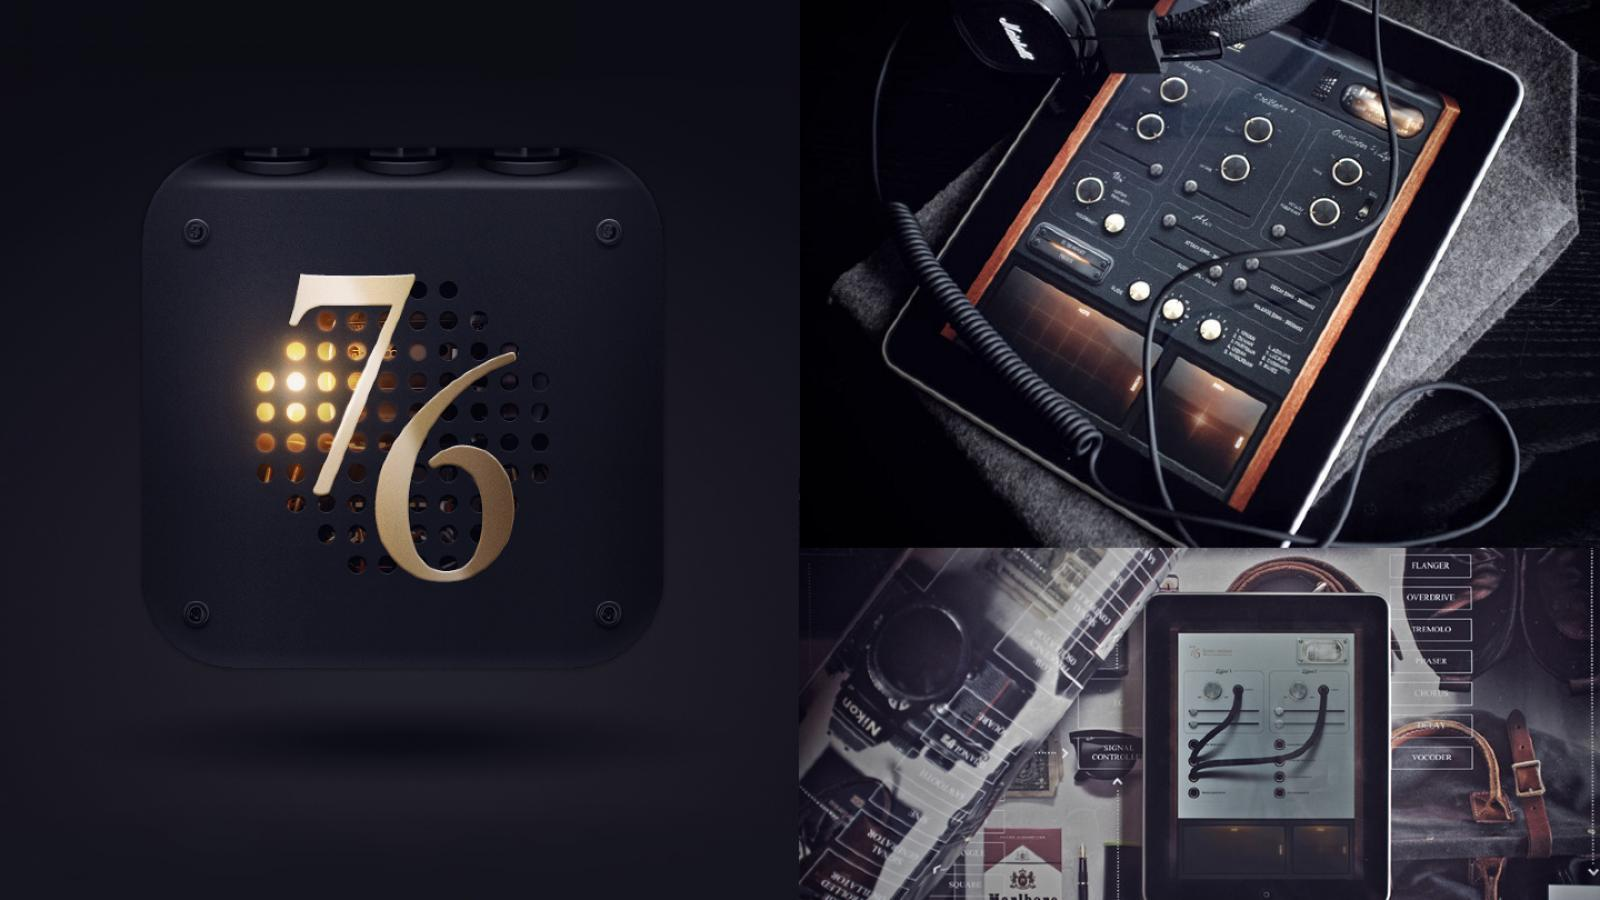 76 Synthesizer App on iPad by Jonas Eriksson